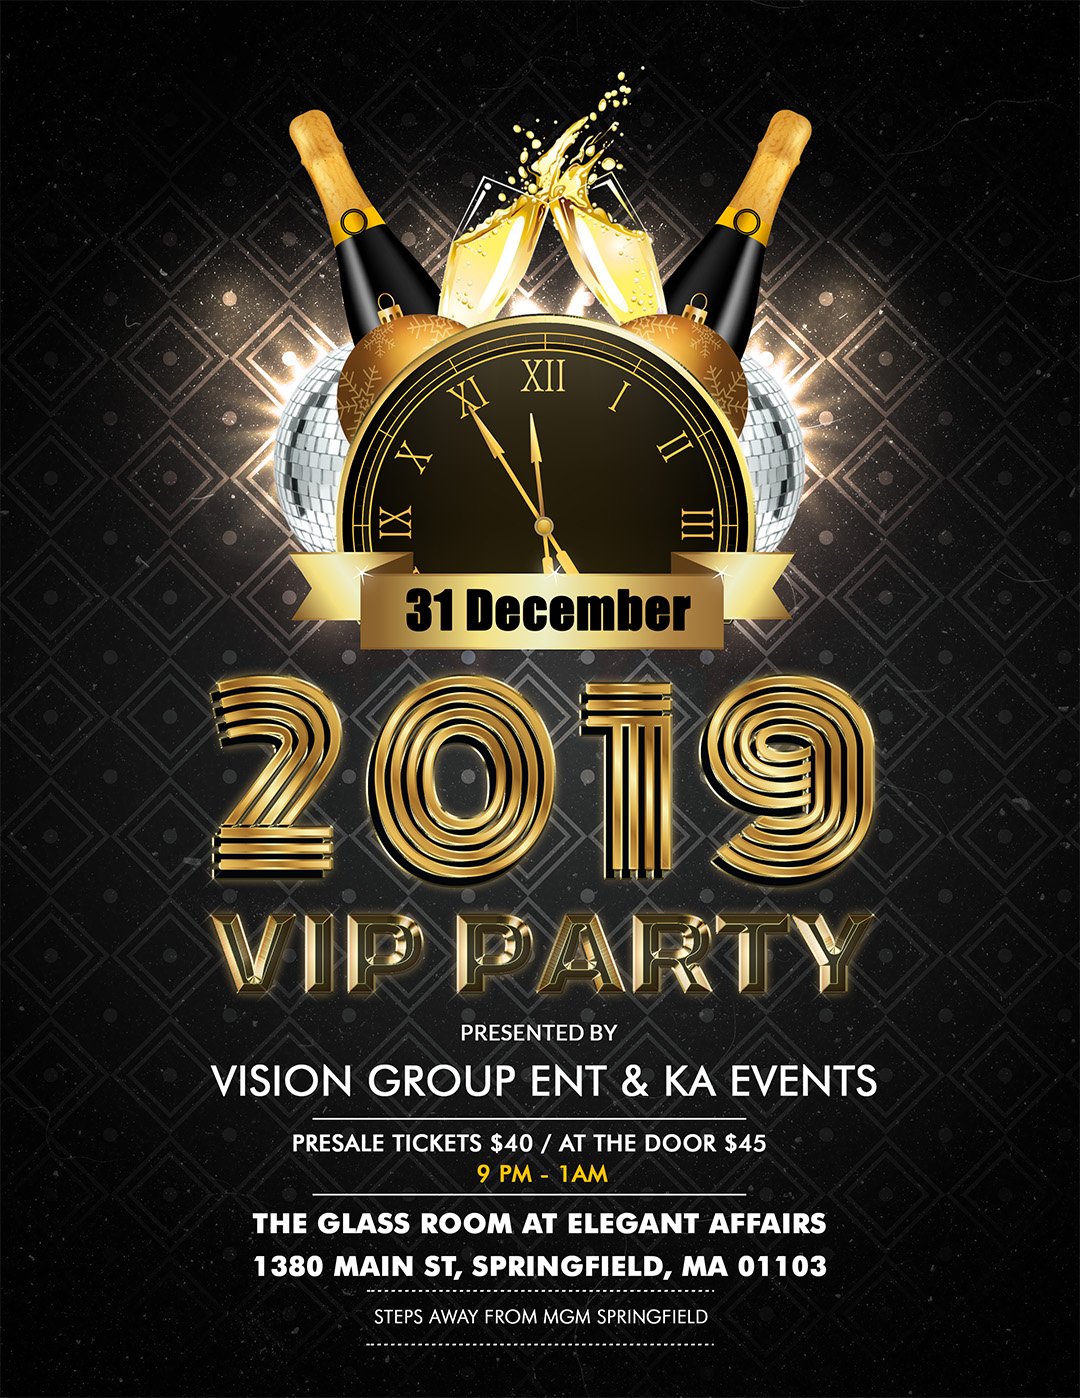 COME RING THE NEW YEAR IN WITH US Vision Group Ent KA Events Present The 2019 YEARS EVE BASH